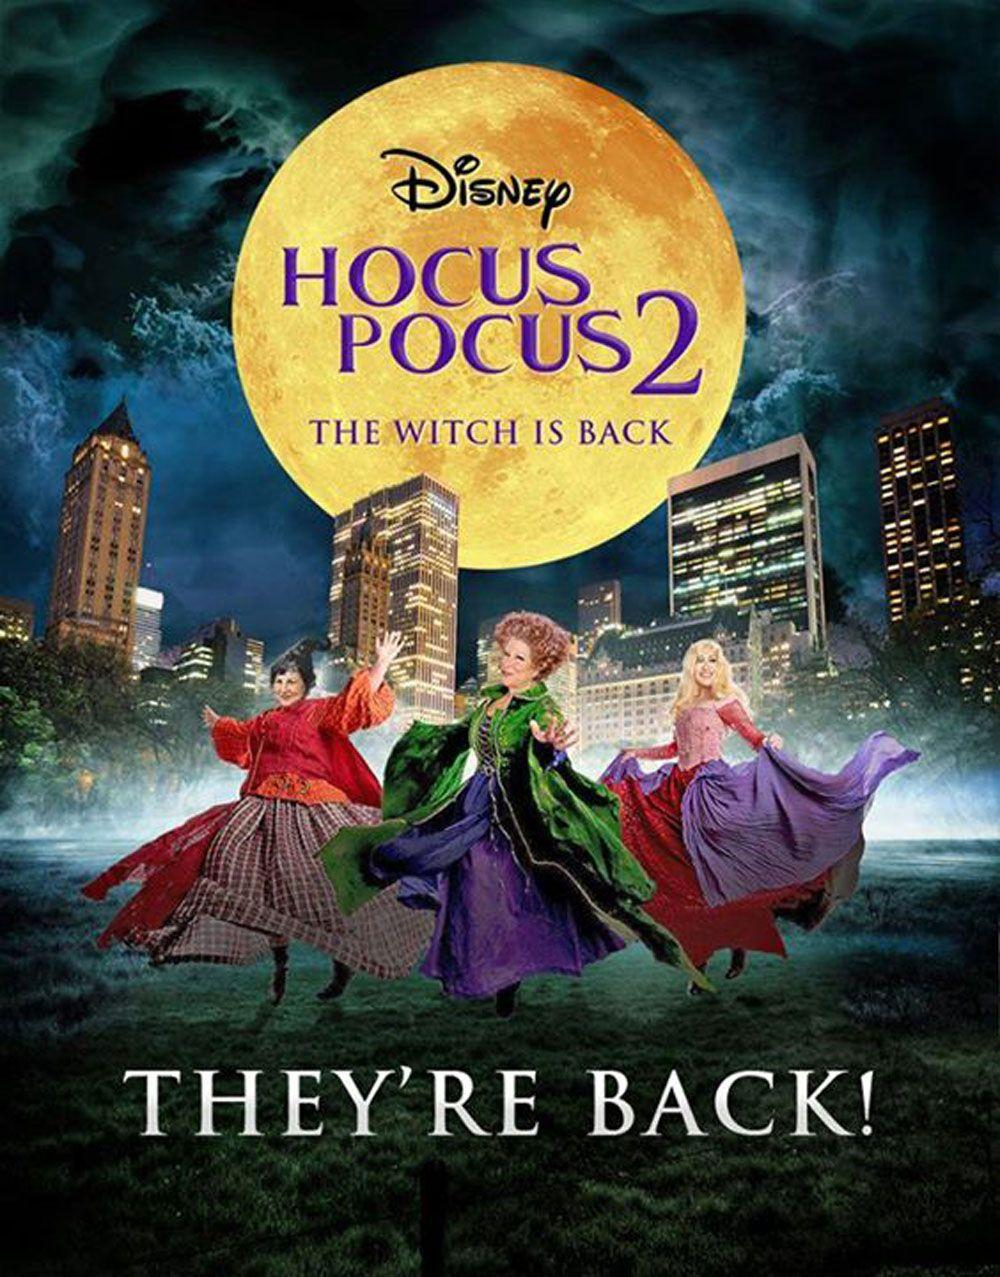 HOCUS POCUS 2 IS OFFICIALLY IN THE WORKS!